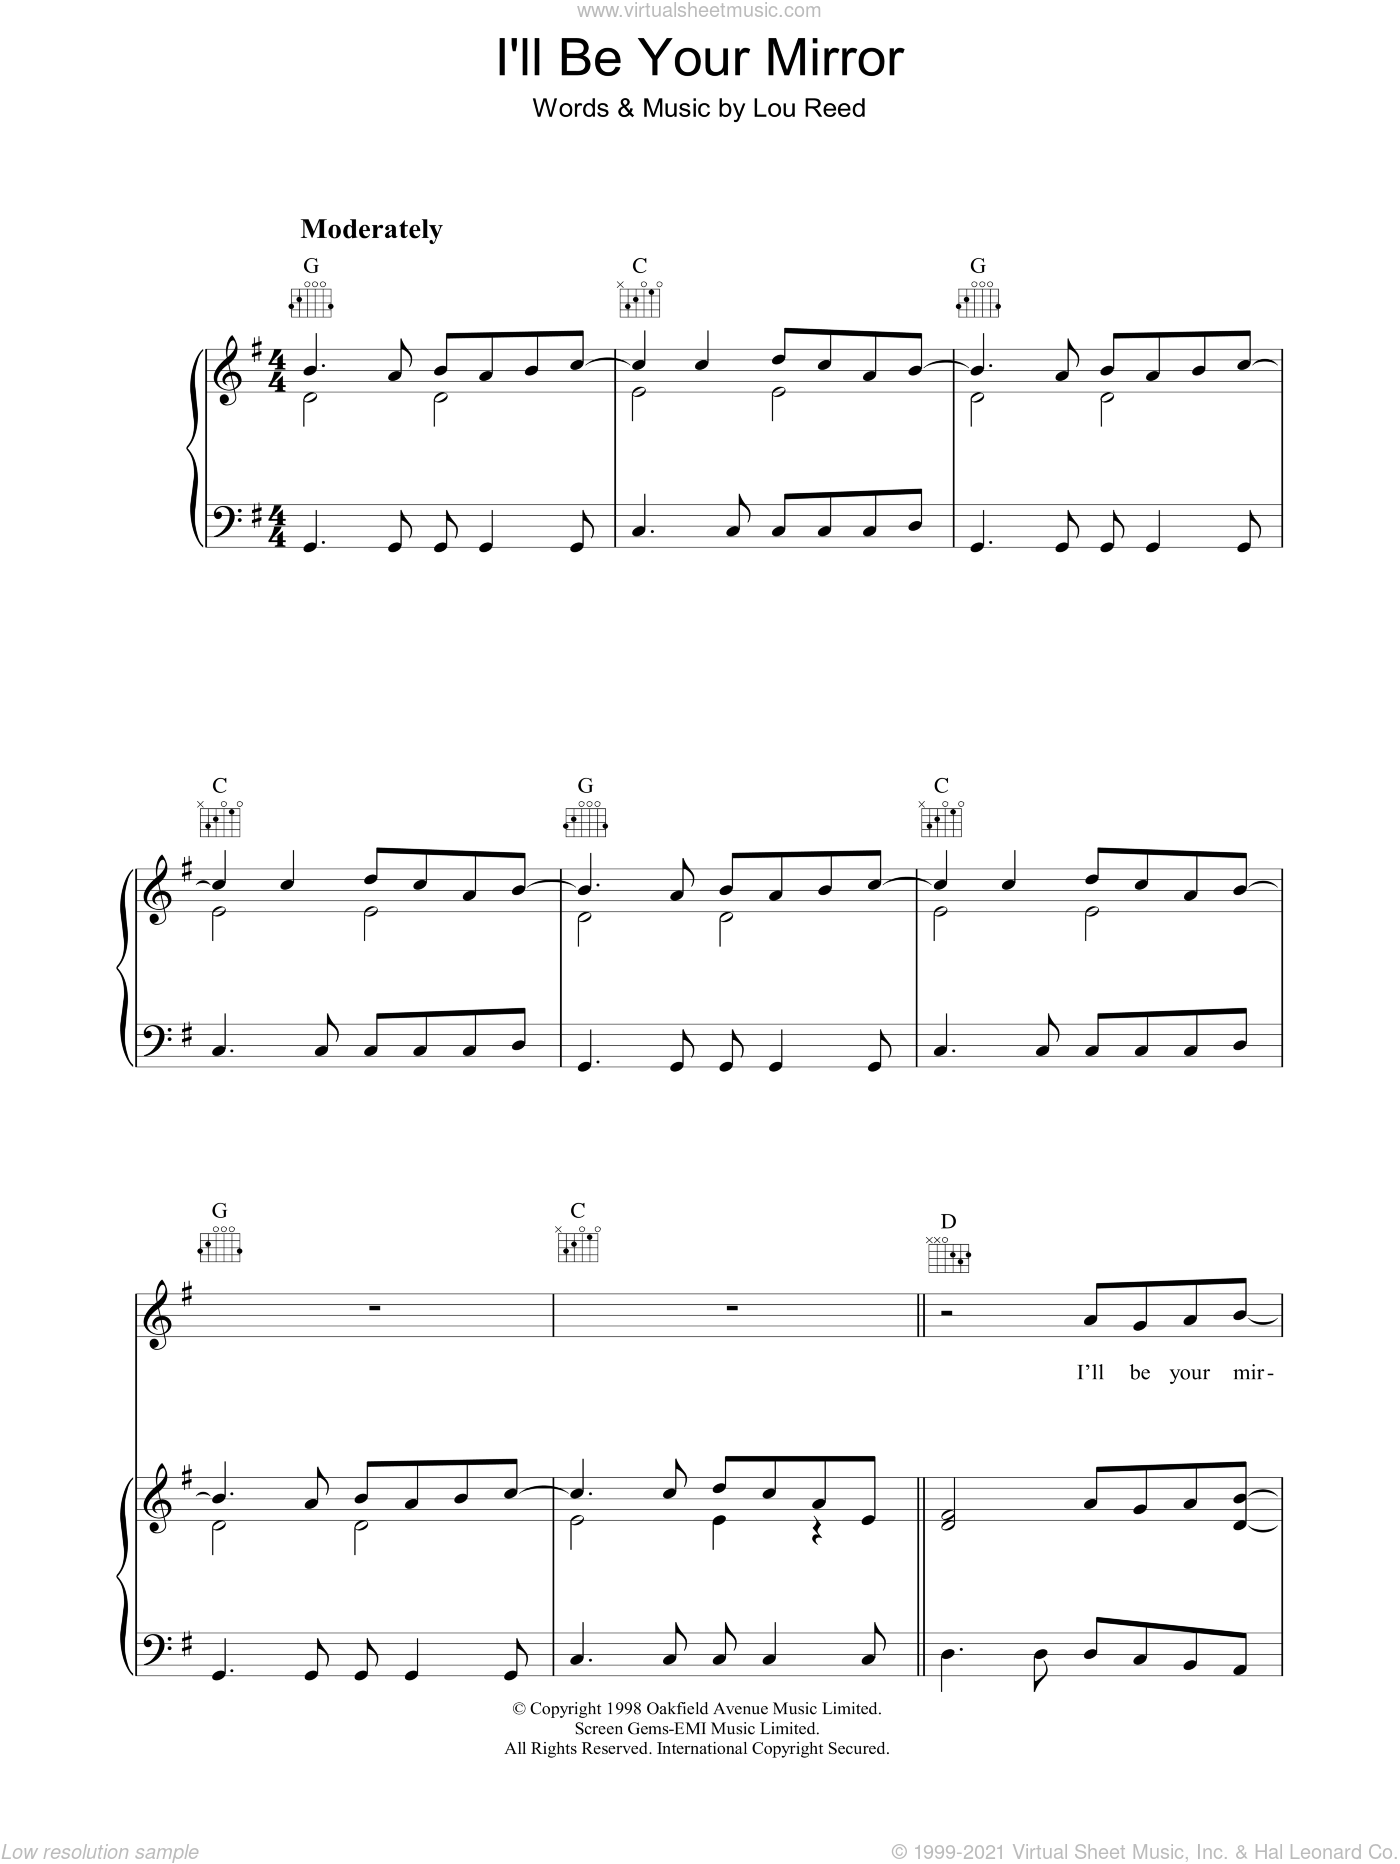 I'll Be Your Mirror sheet music for voice, piano or guitar by Lou Reed, intermediate. Score Image Preview.